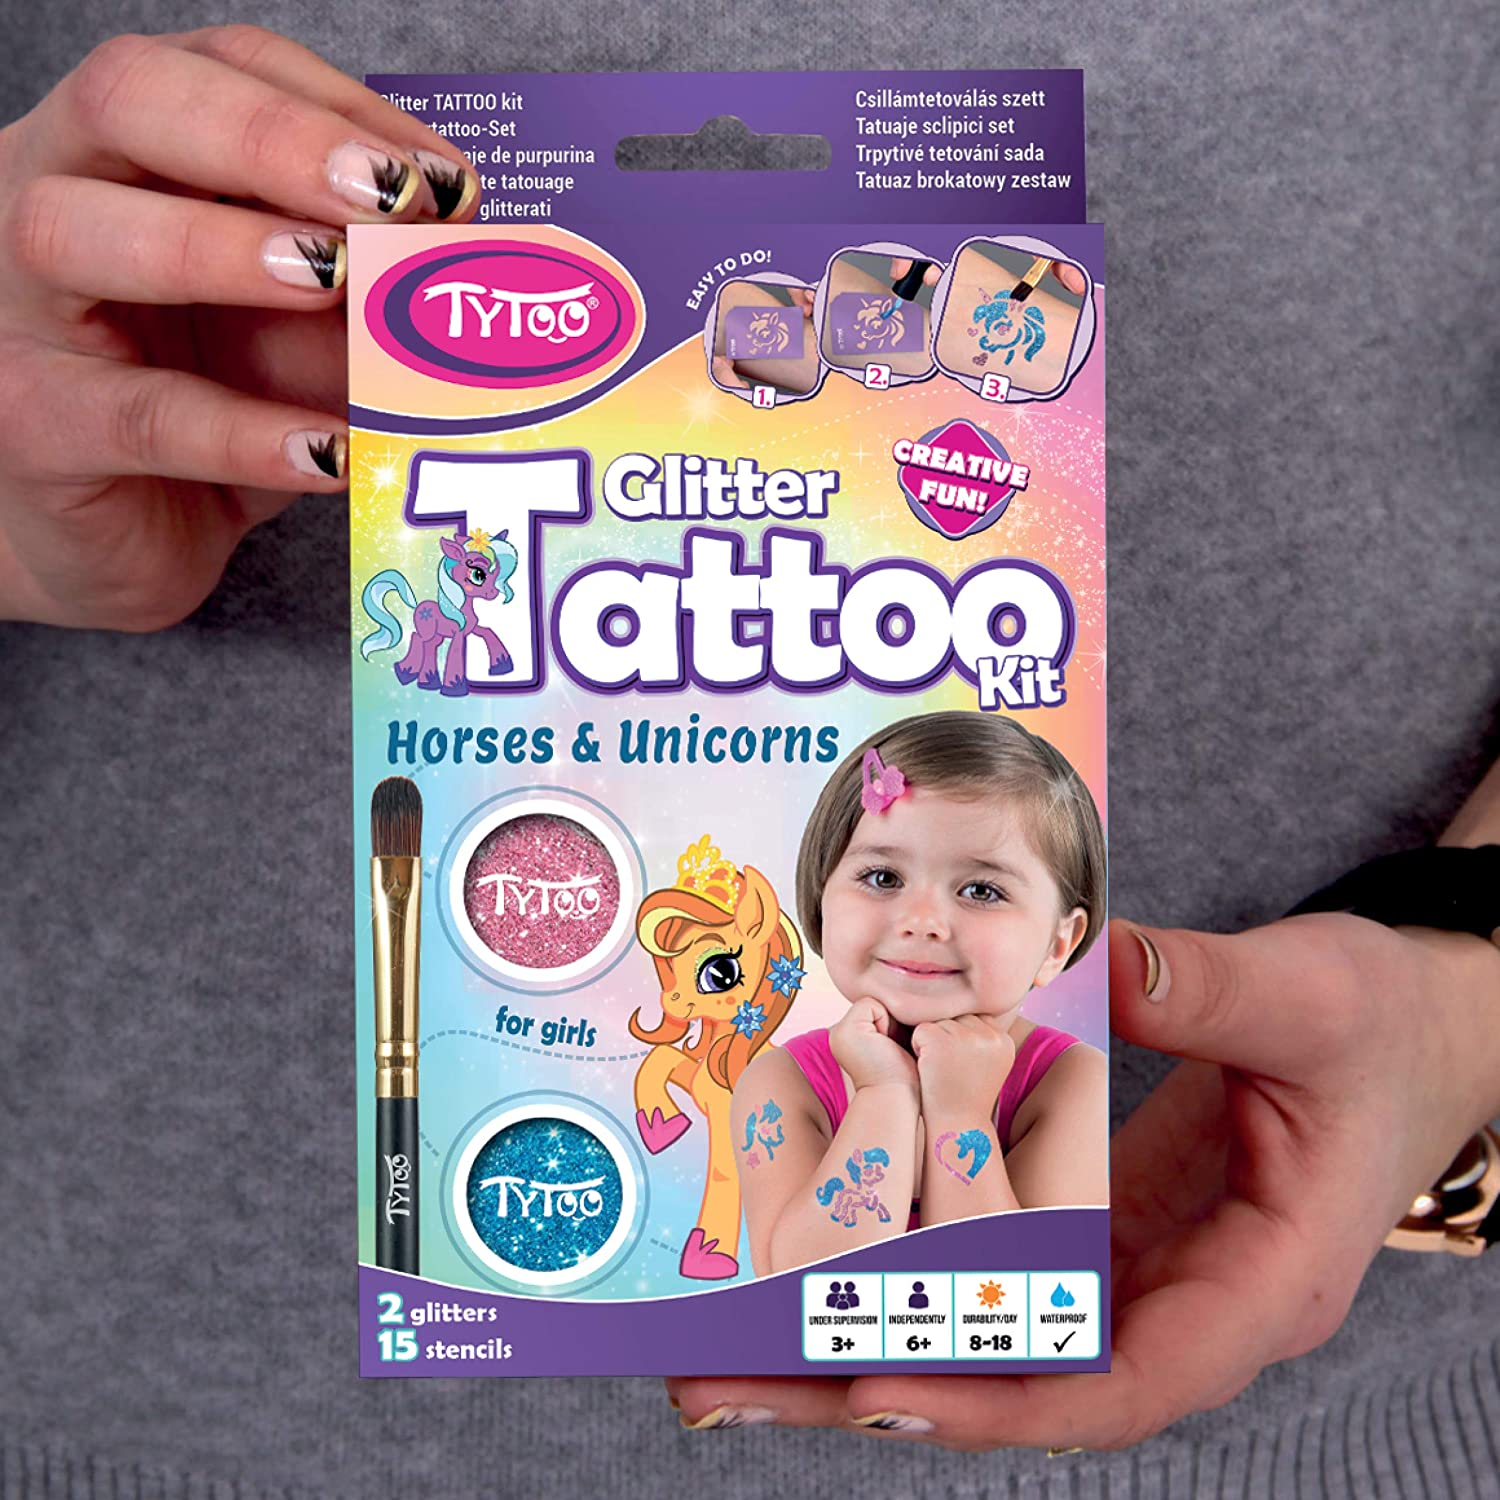 Glitter Tattoo Kit for Girls with 15 amazing Horses and Unicorns stencils 8-18 lasting temporary tattoos HYPOALLERGENIC AND CRUELTY FREE